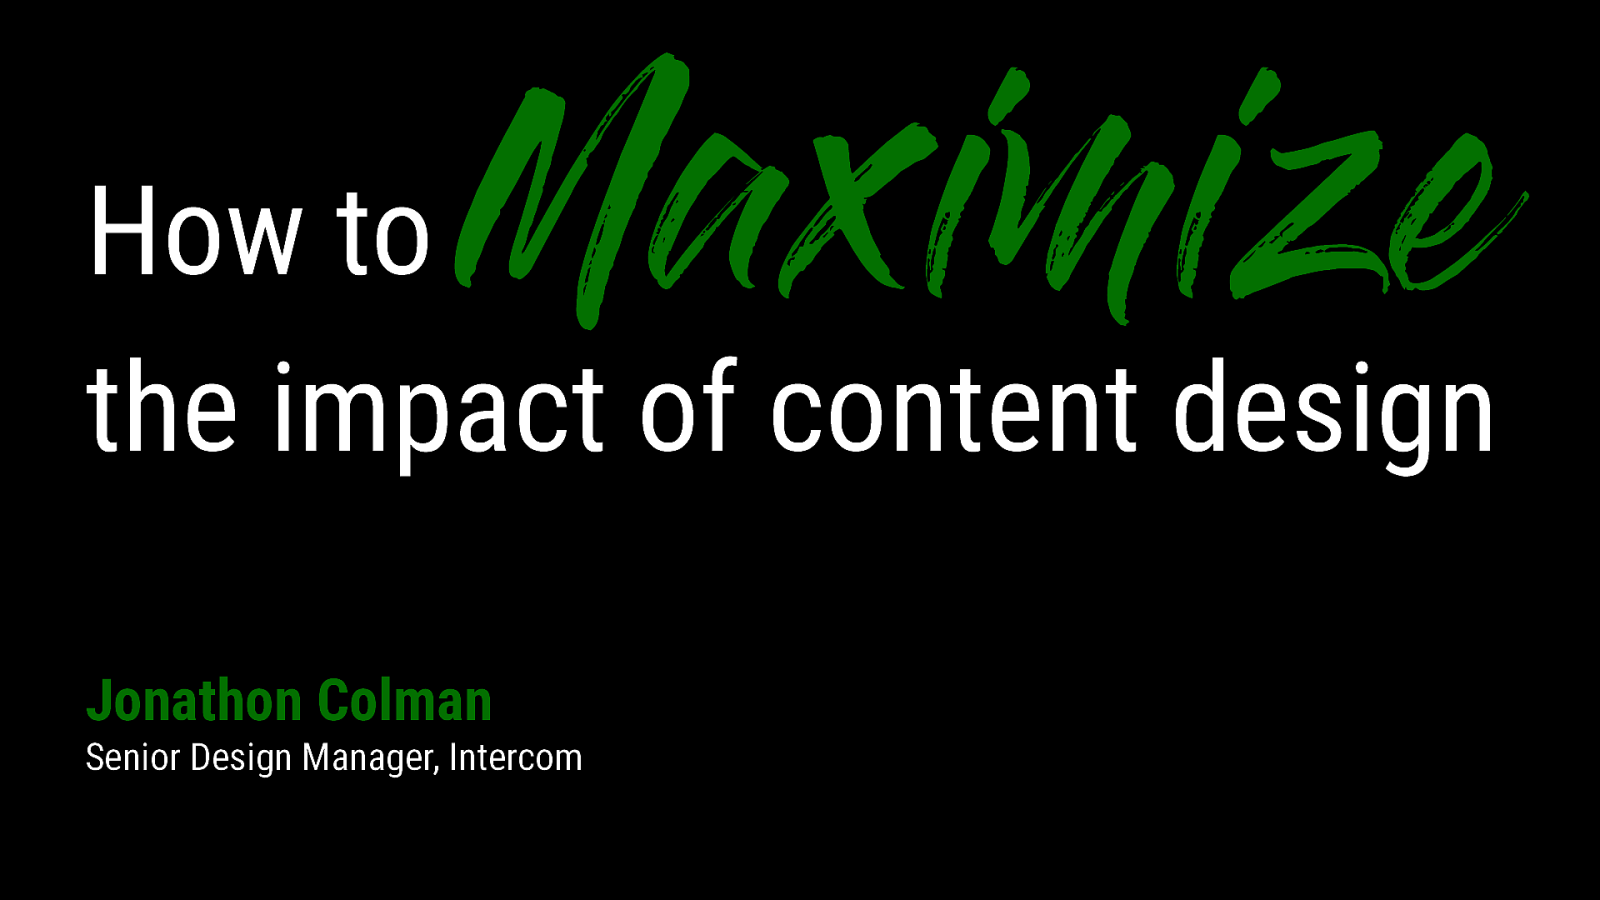 Day 2 keynote: How to maximize the impact of content design